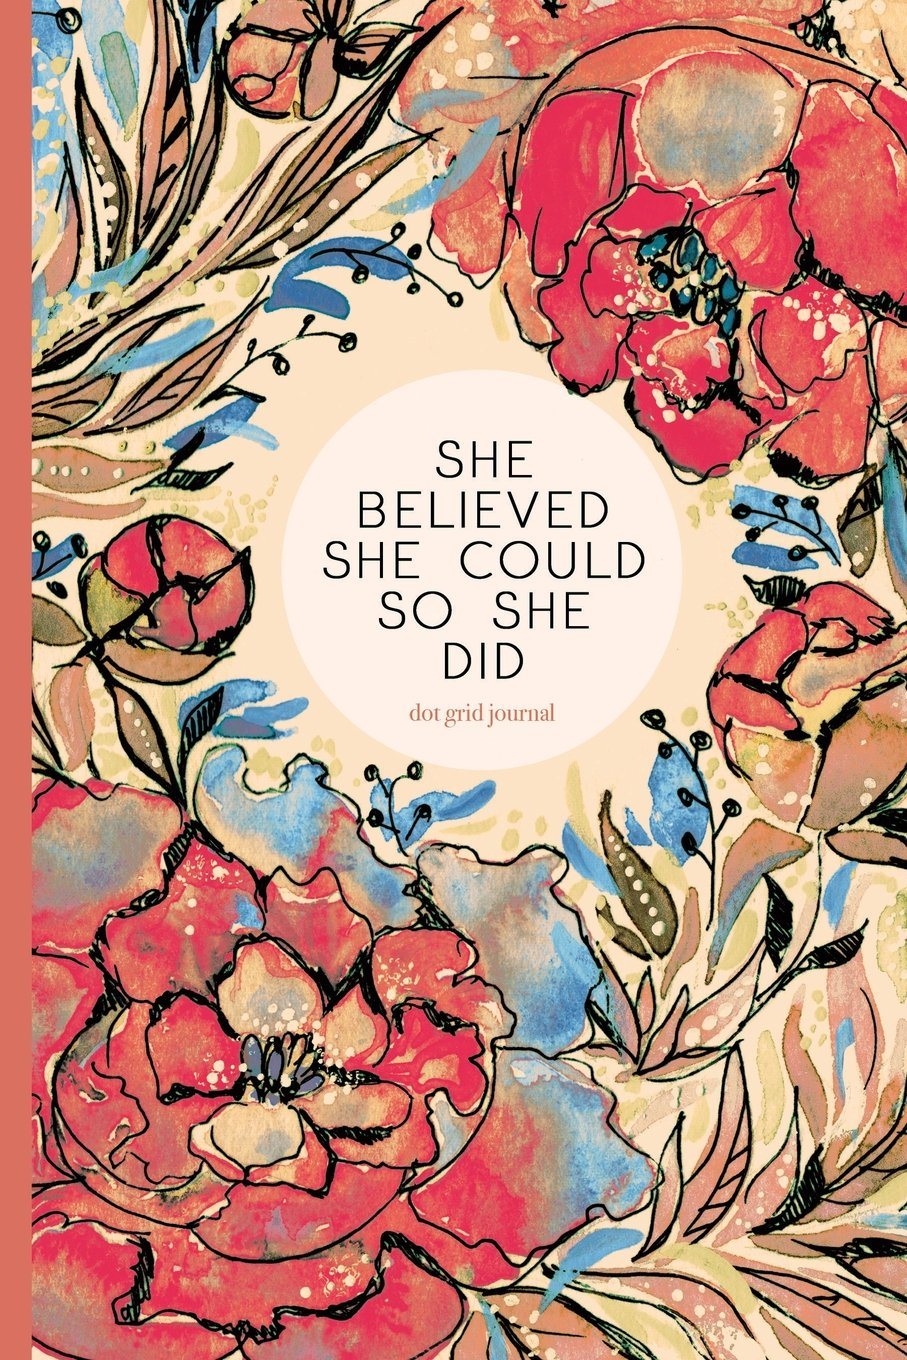 Download Dot Grid Journal - She Believed She Could So She Did: 6x9 Dotted Notebook, Floral Softcover (Journals To Write In) PDF